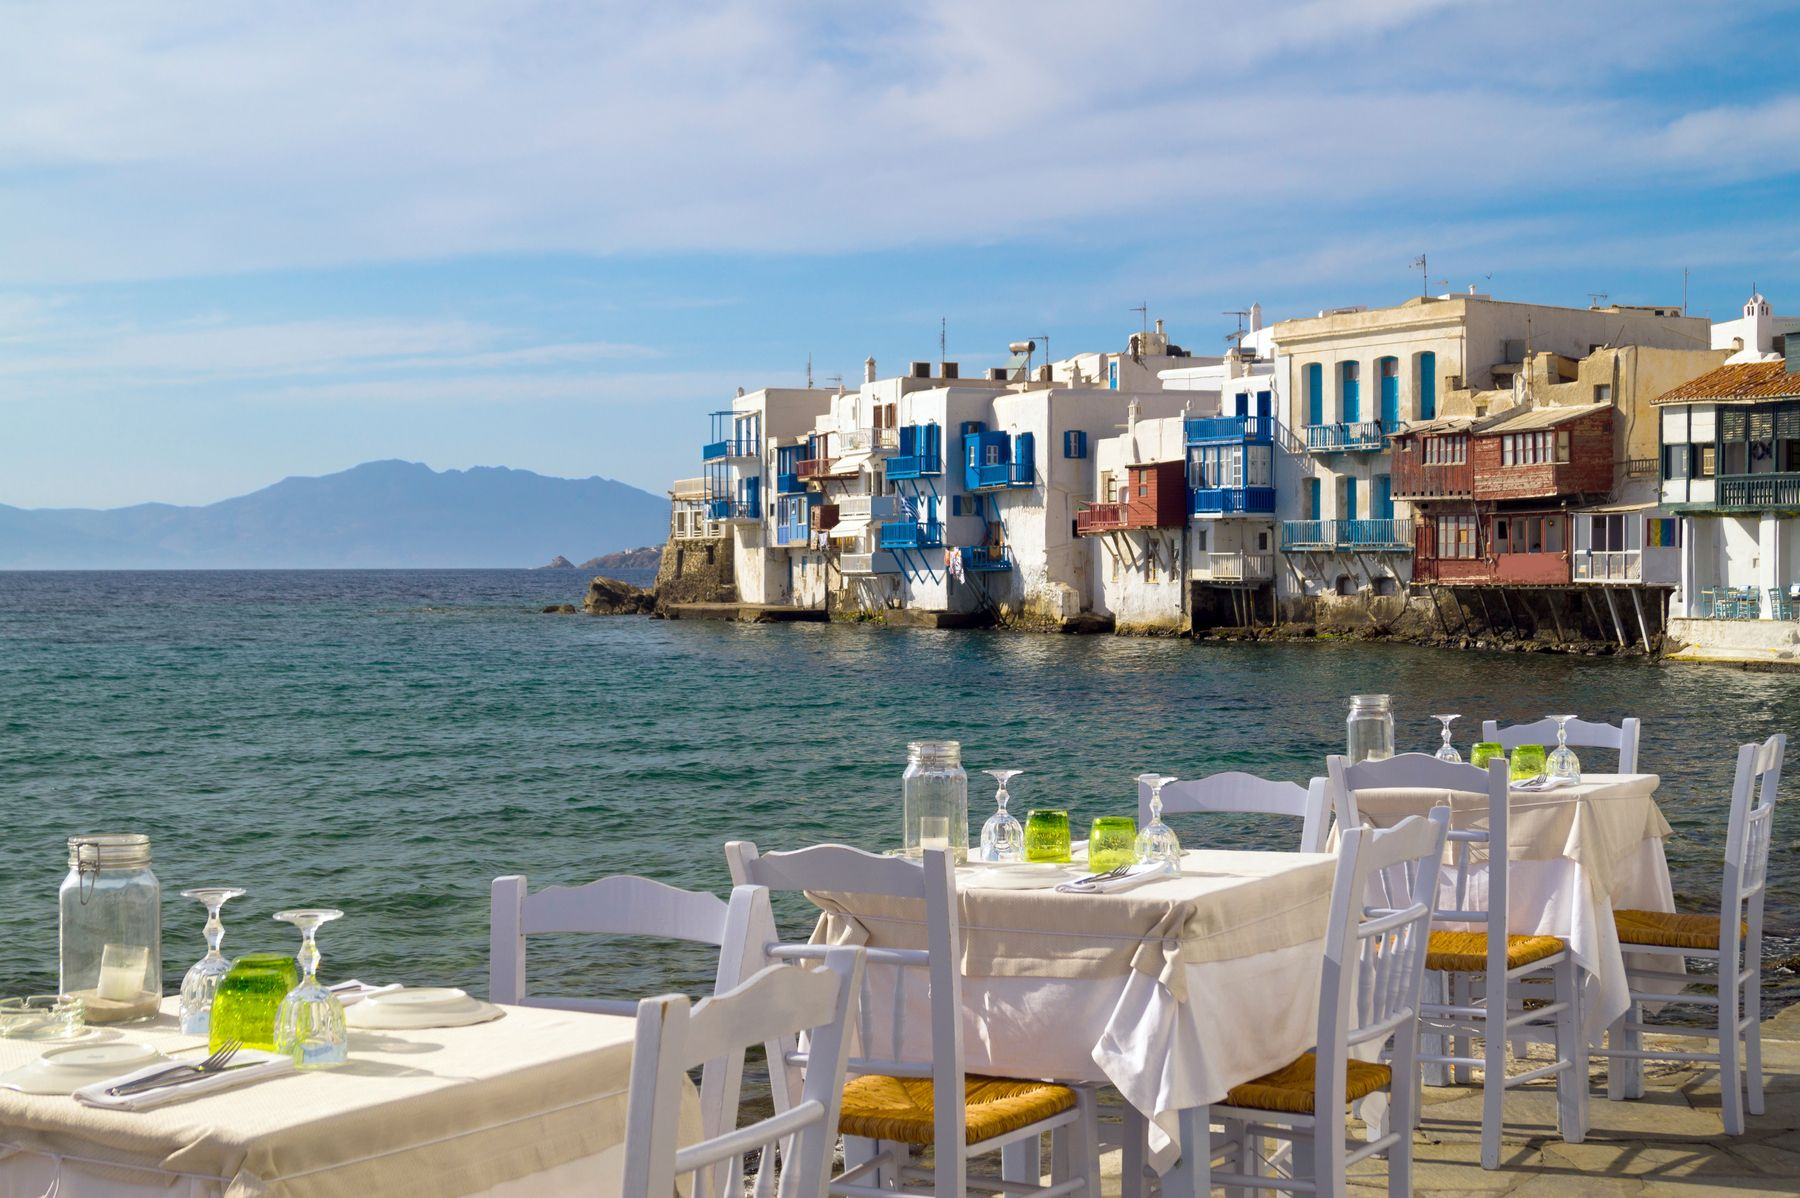 Now that Greece is open you can enjoy meals in outdoor restaurants, with tables and chairs set right beside the sea in Santorini, with views out to ramshackle buildings in the foreground and further mountain in the back.